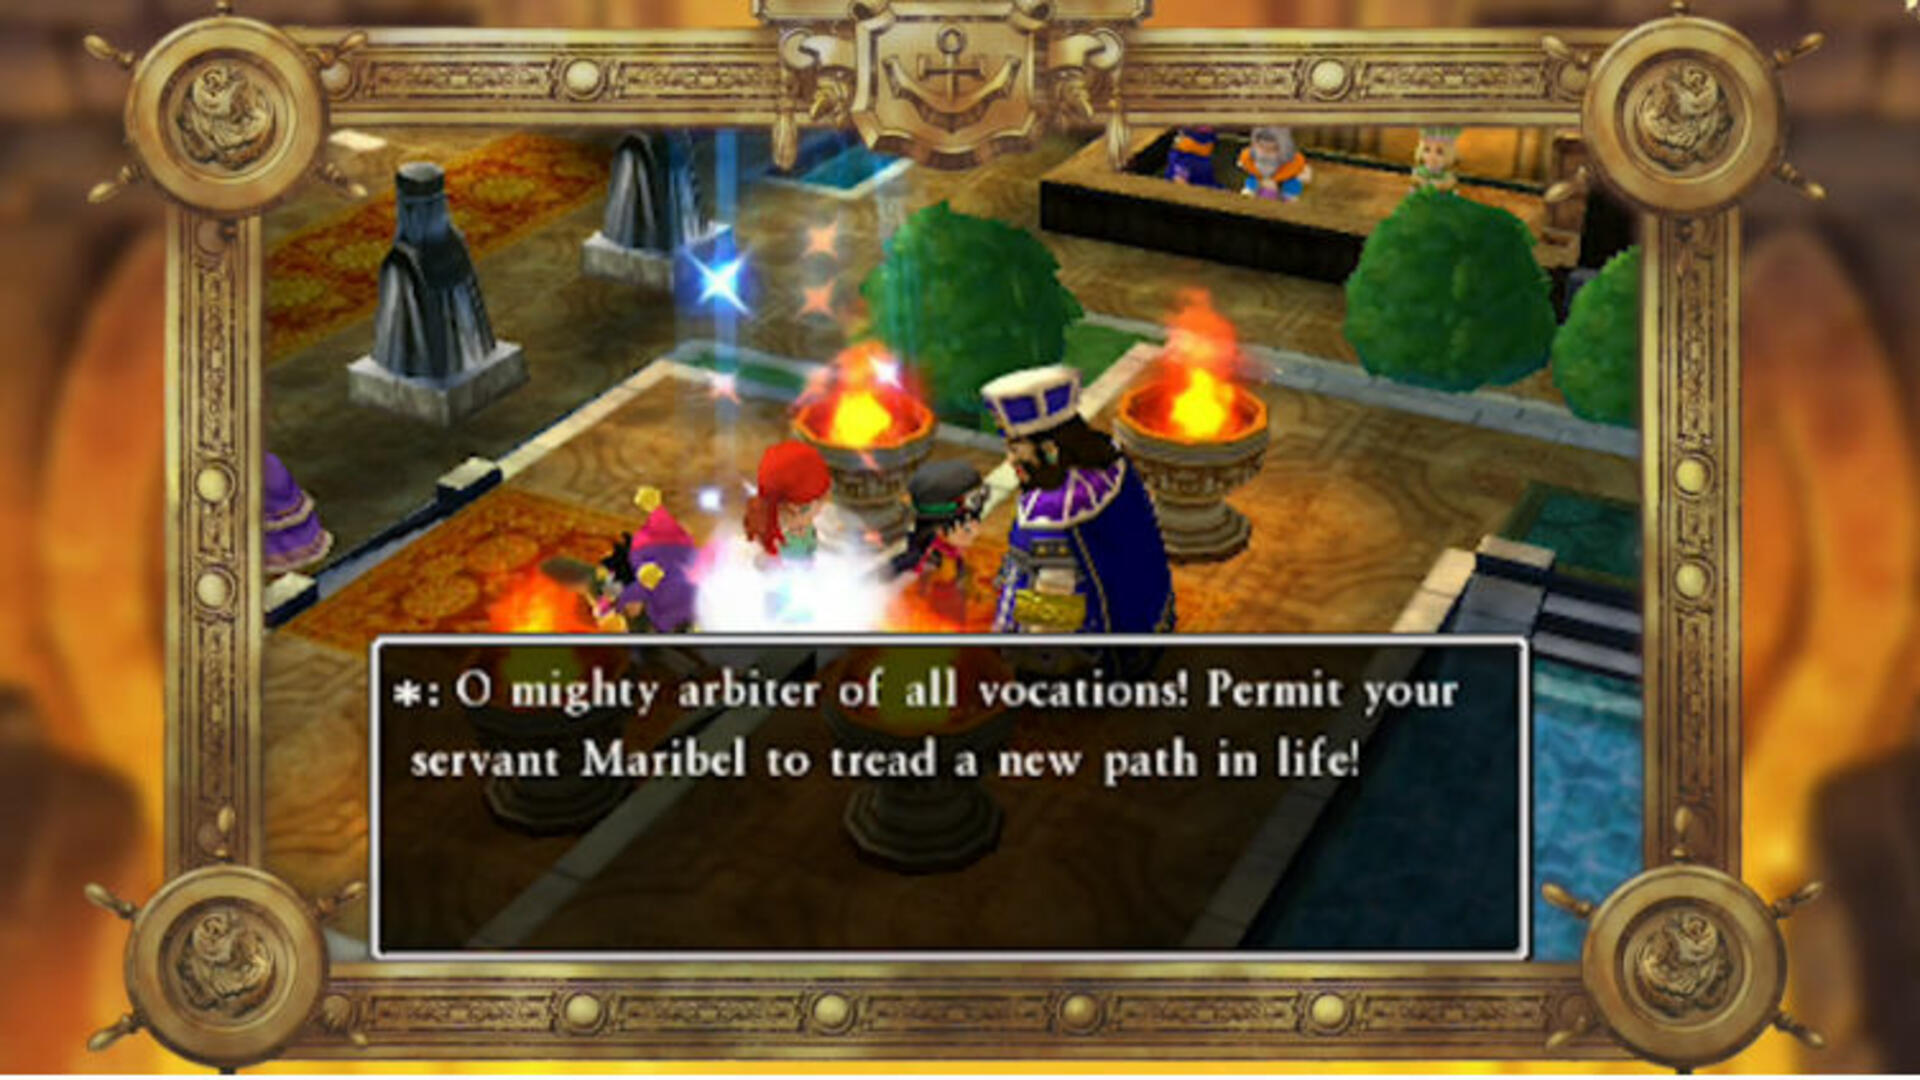 Dragon Quest 7 3DS Druid Guide: Spells, Abilities, Stats, and More